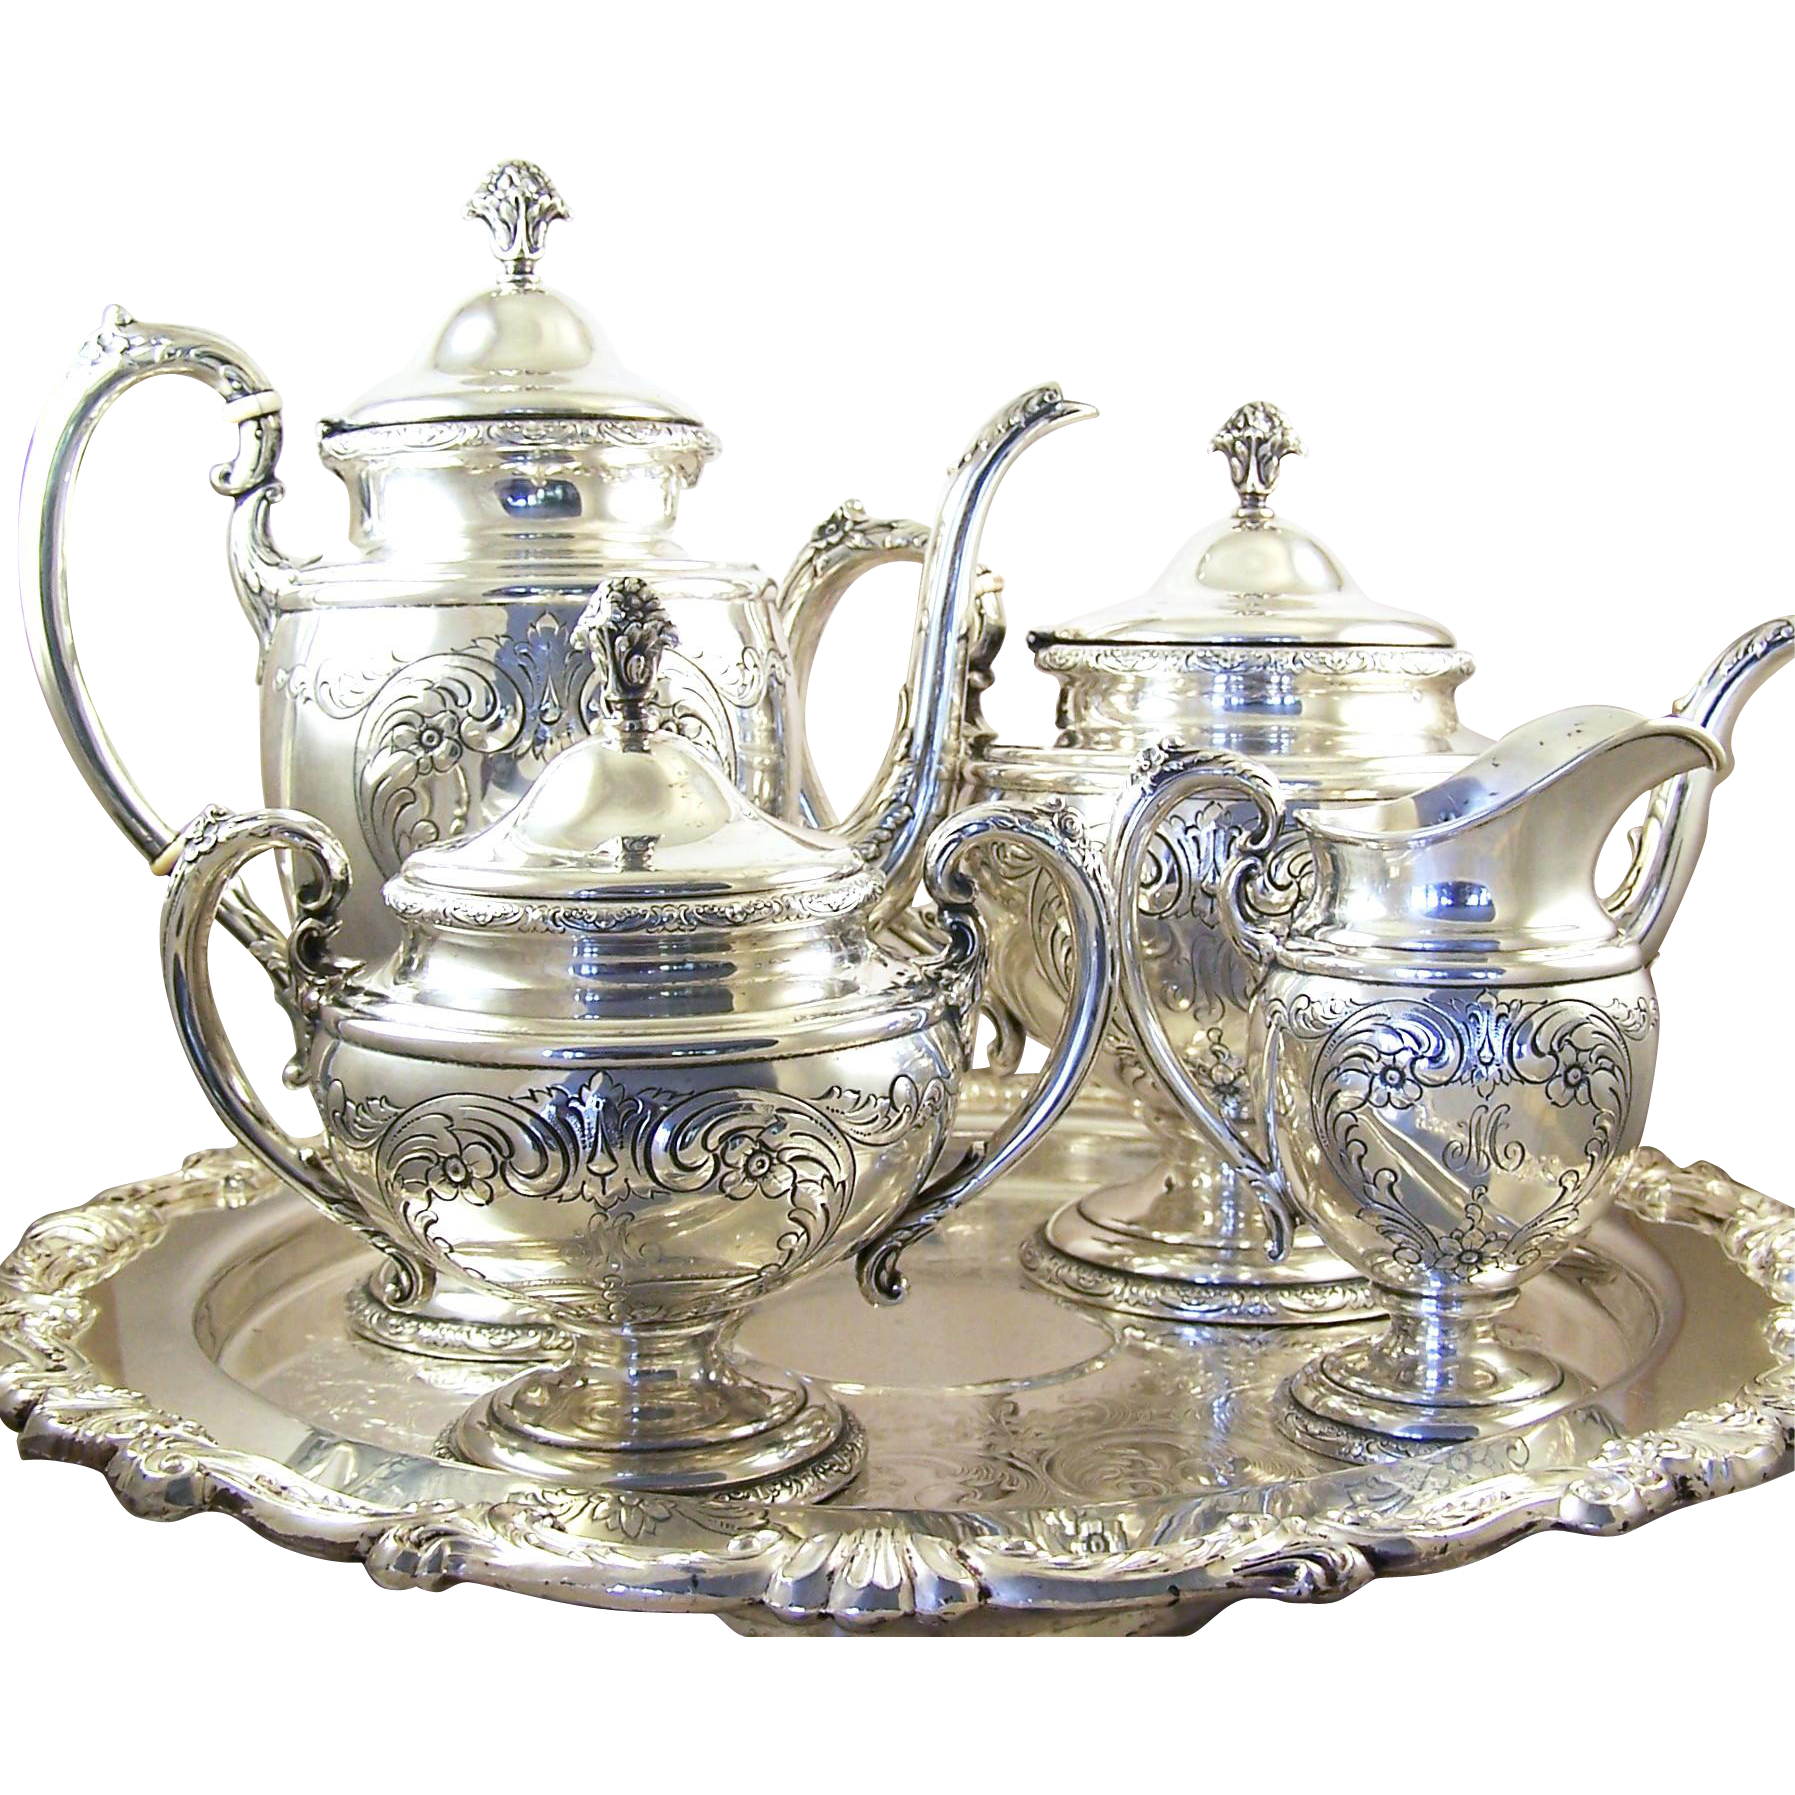 TOWLE 'Old Master' STERLING 4Piece Coffee and Tea Service